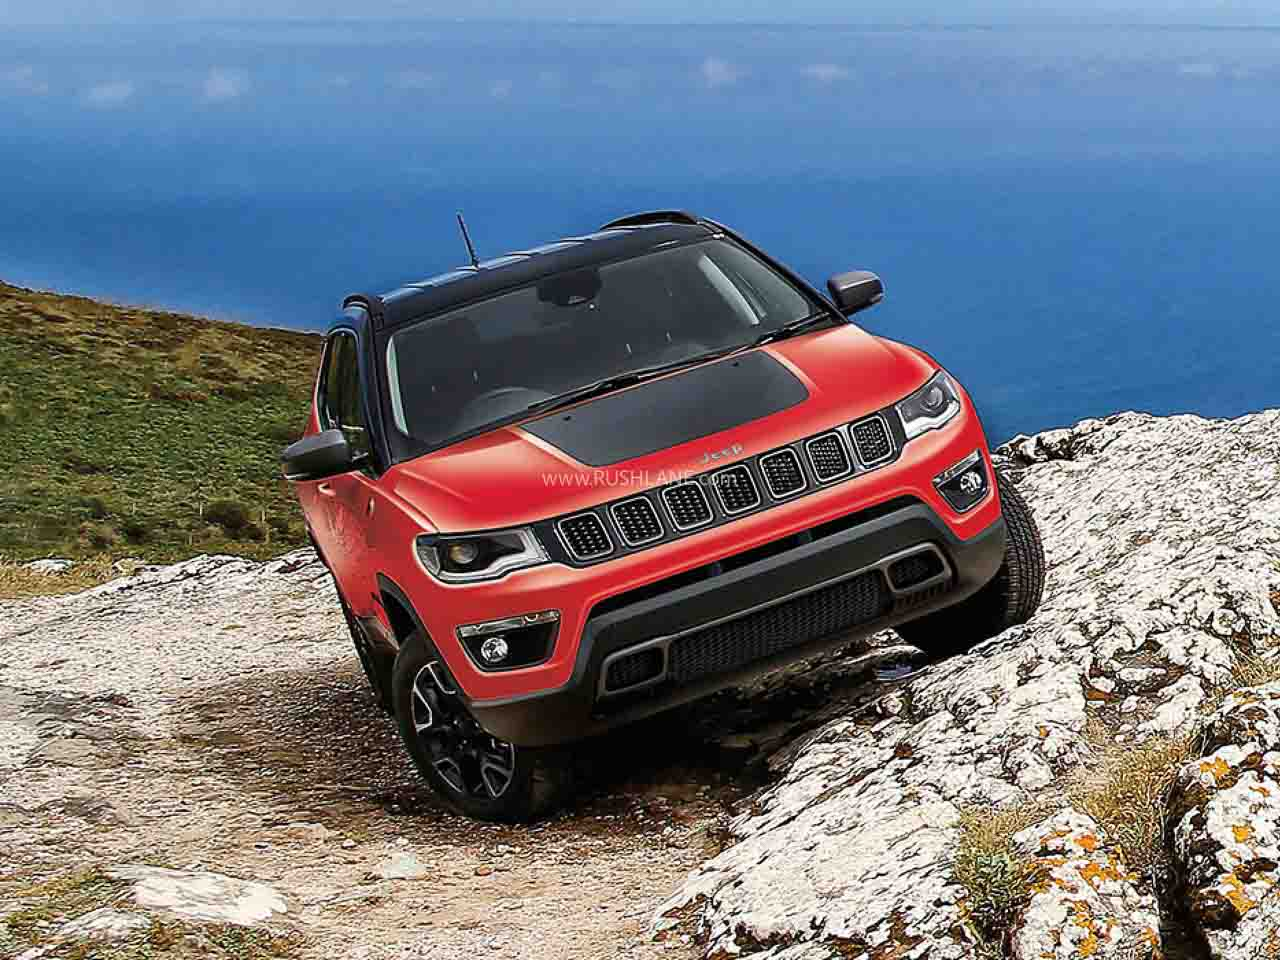 Jeep Compass production restarts